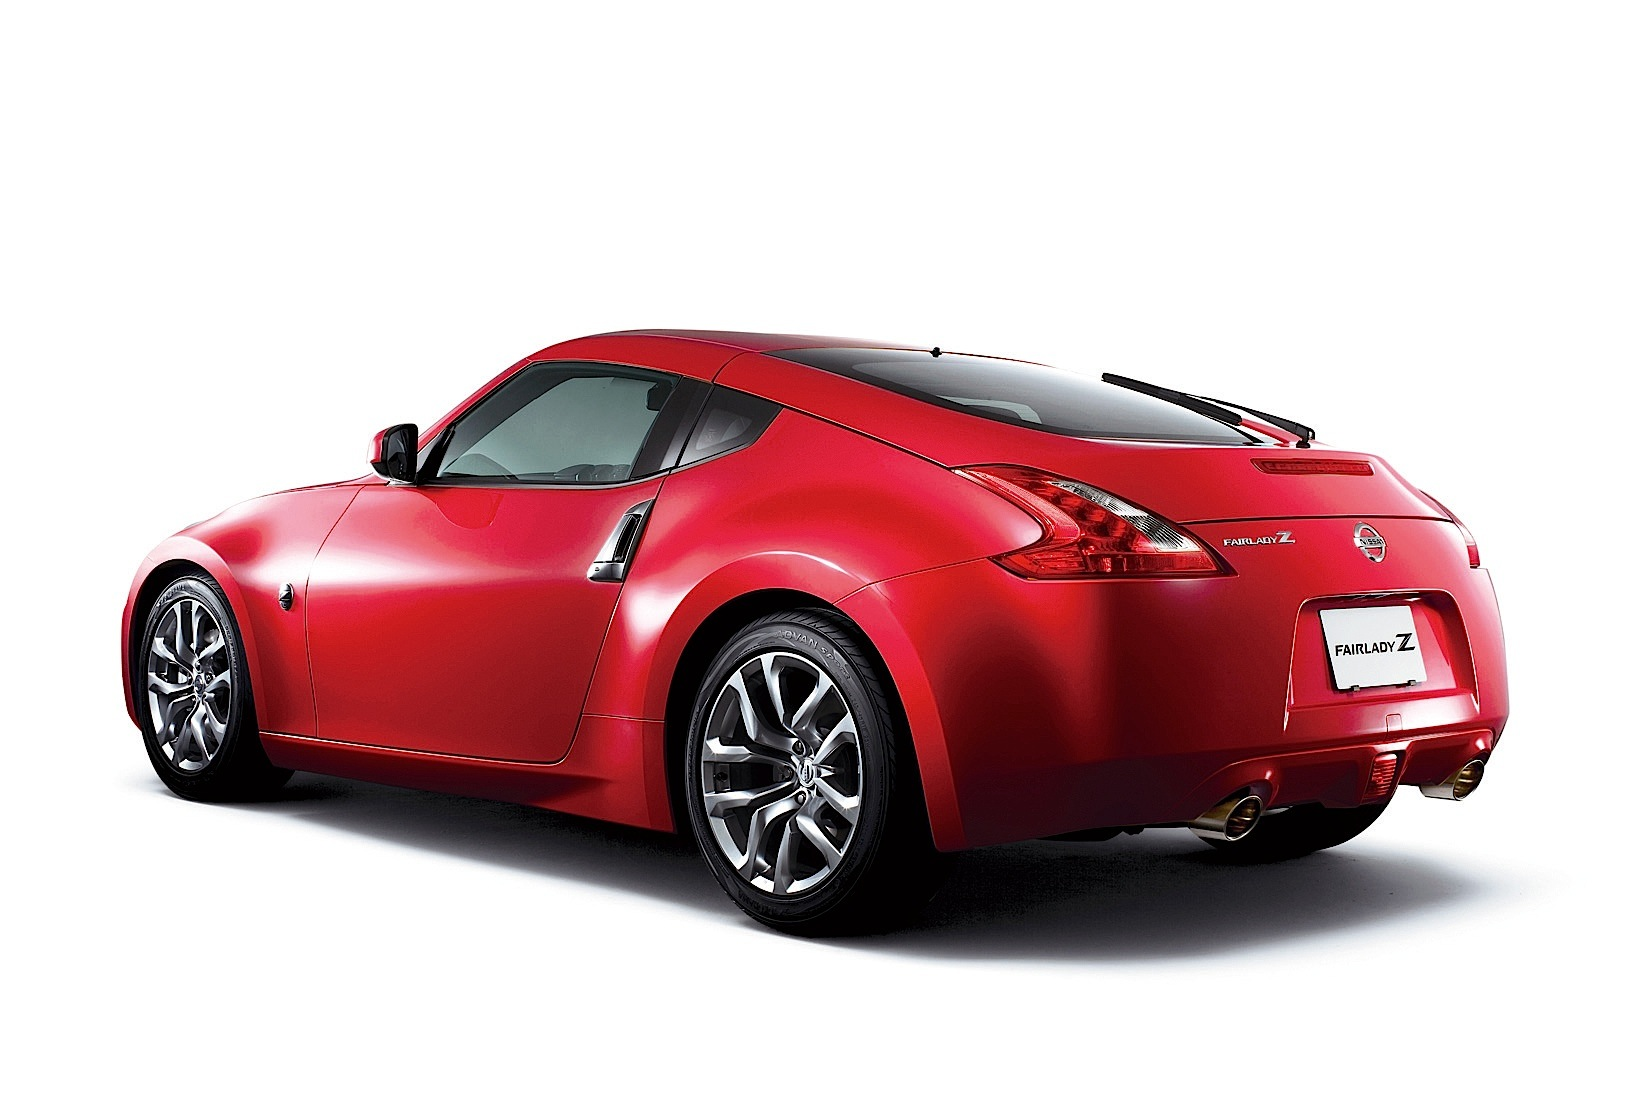 nissan 370z coupe specs 2012 2013 2014 2015 2016 2017 2018 autoevolution. Black Bedroom Furniture Sets. Home Design Ideas